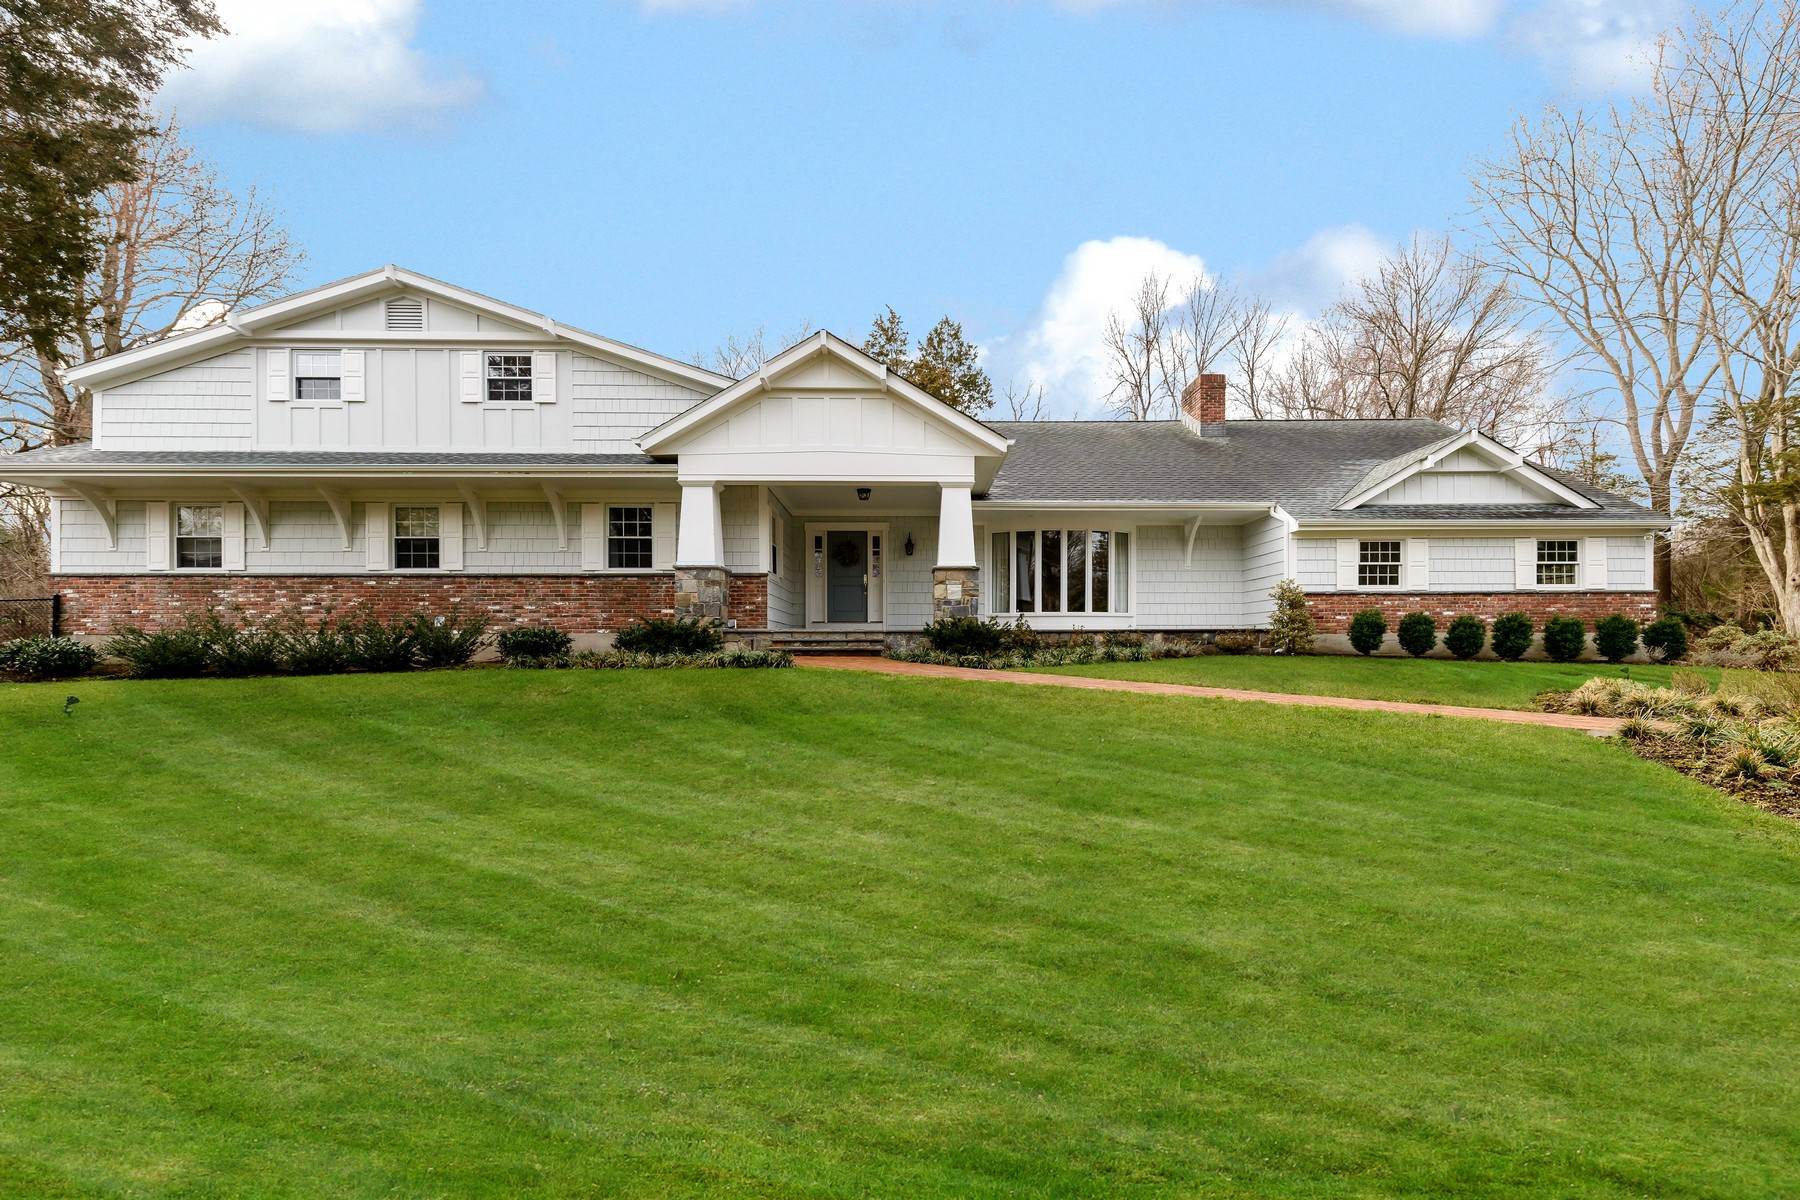 Single Family Home for Sale at Farm Ranch 5 Pippin Ln Lloyd Harbor, New York, 11743 United States